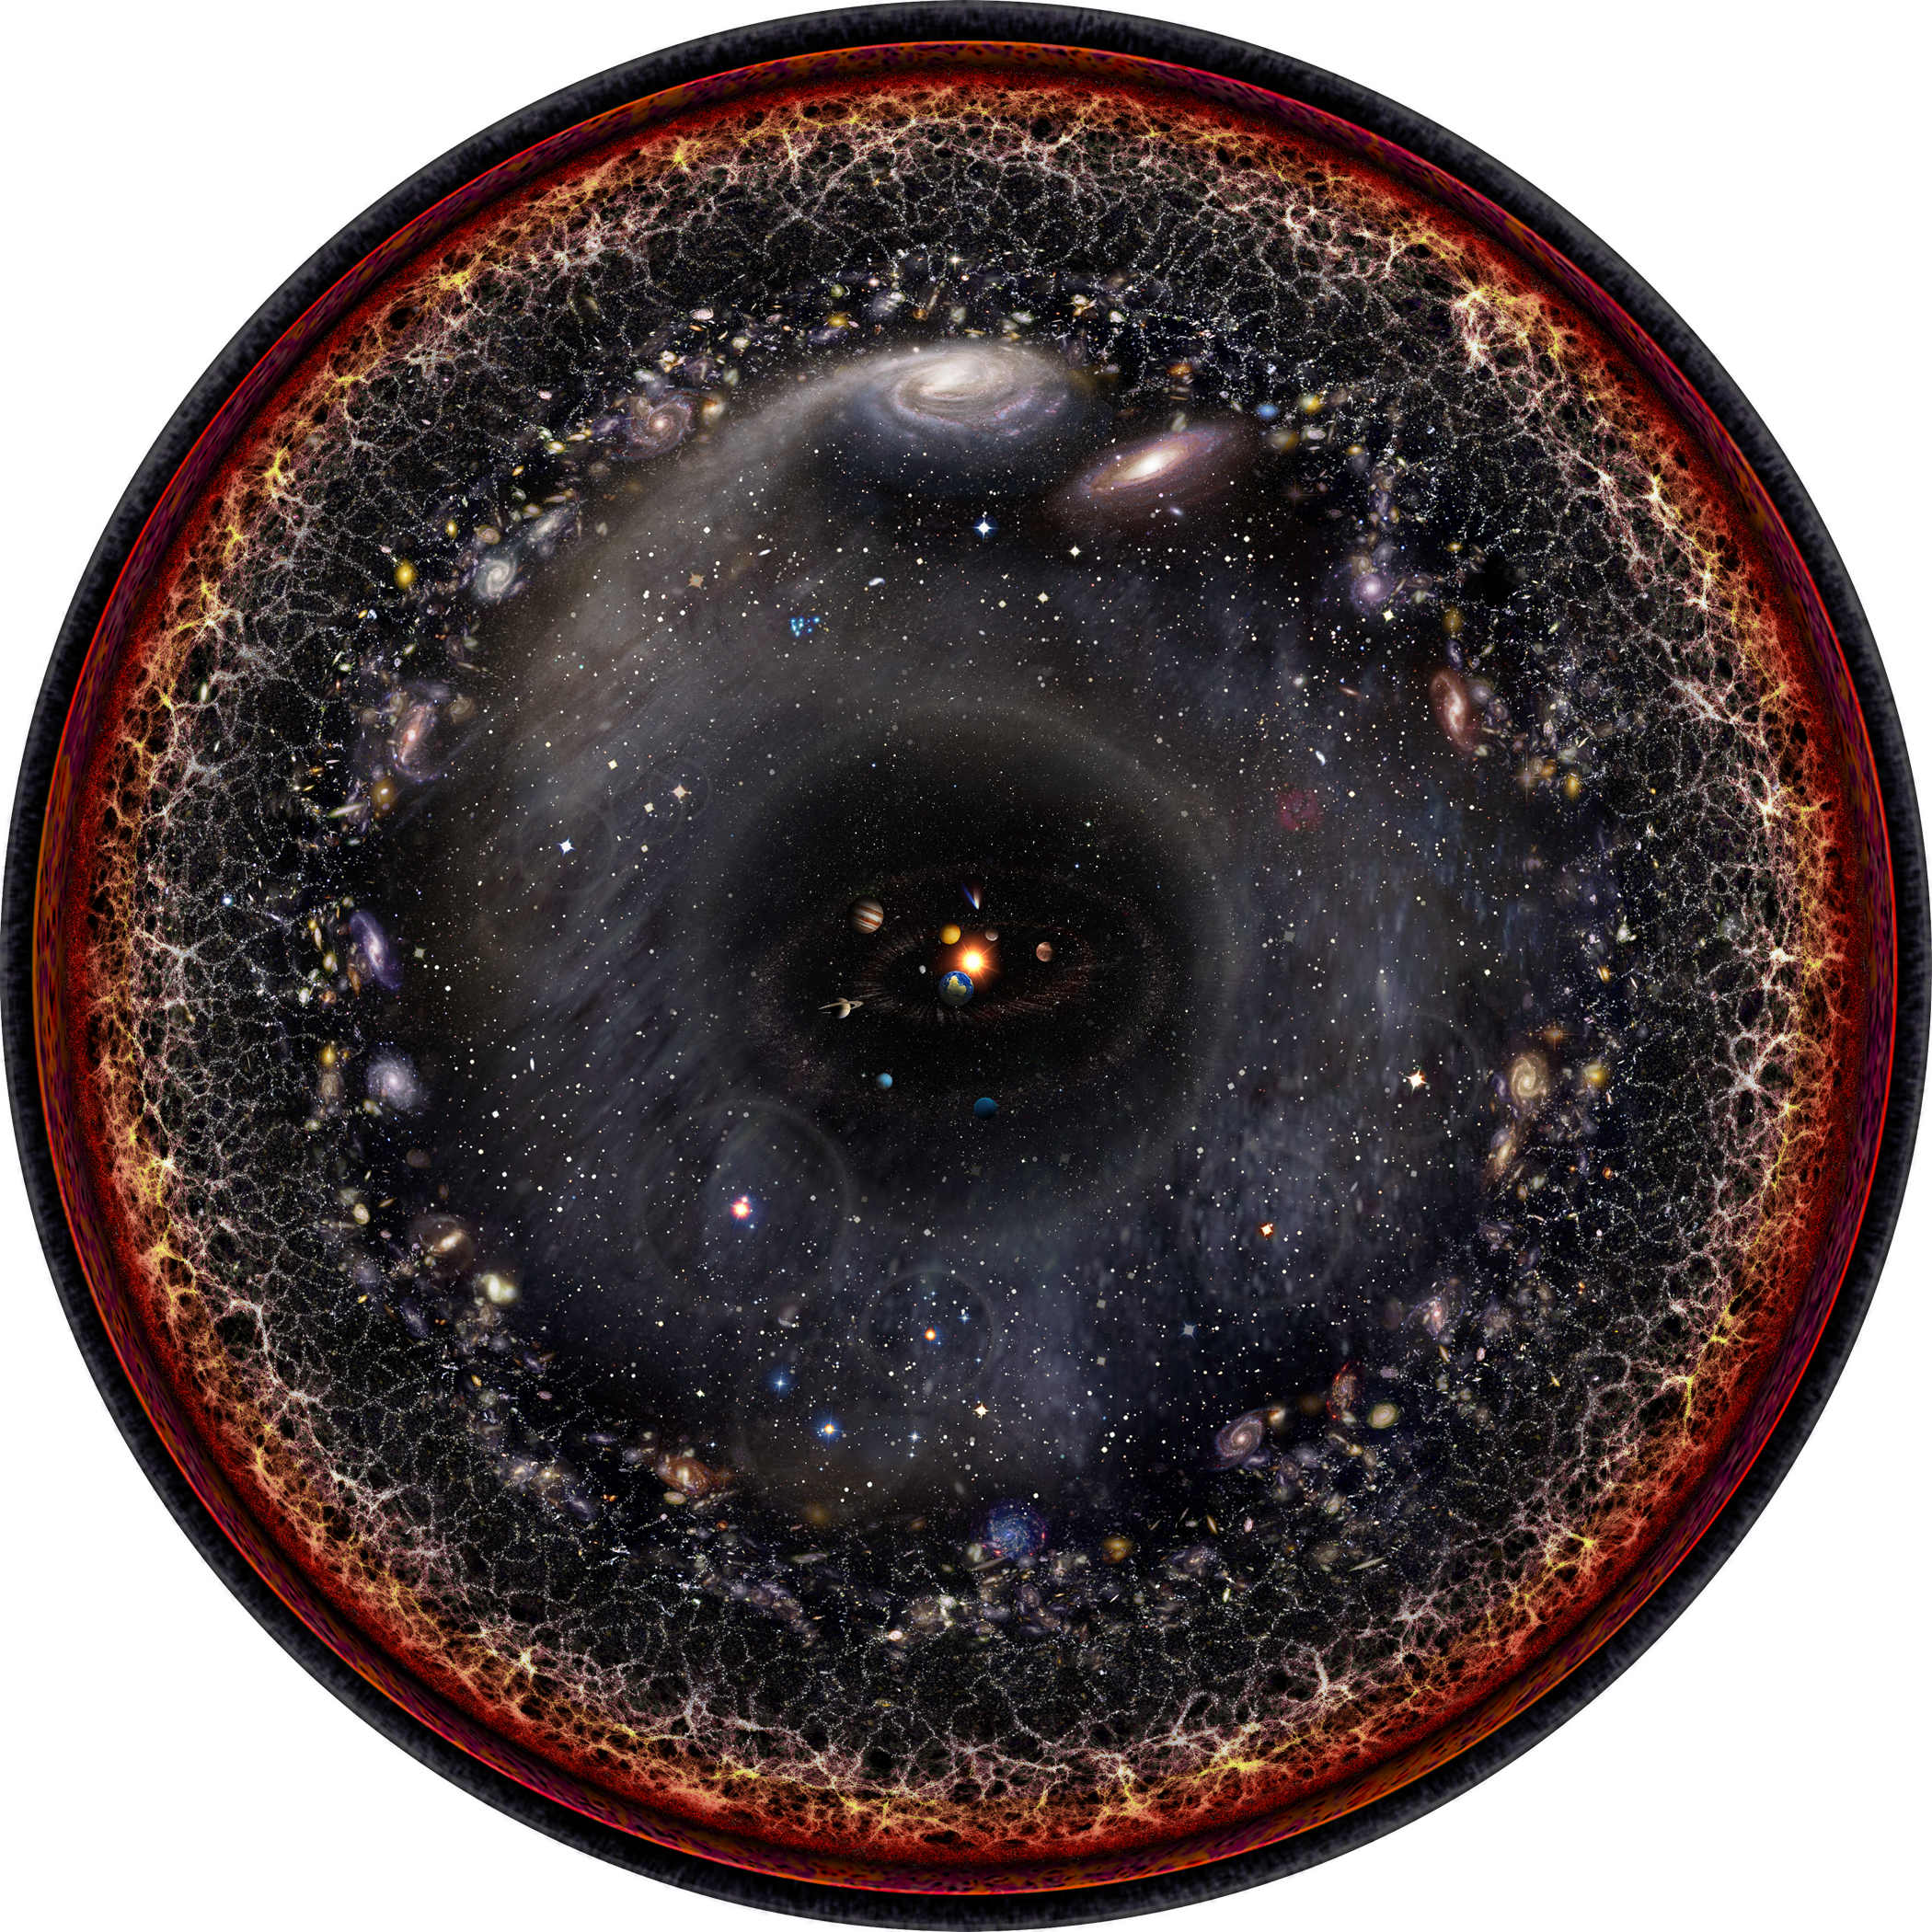 Artist's logarithmic scale conception of the observable universe with the Solar System at the center, inner and outer planets, Kuiper belt, Oort cloud, Alpha Centauri, Perseus Arm, Milky Way galaxy, Andromeda galaxy, nearby galaxies, Cosmic Web, Cosmic microwave radiation and Big Bang's invisible plasma on the edge.  Image credit: Pablo Carlos Budassi